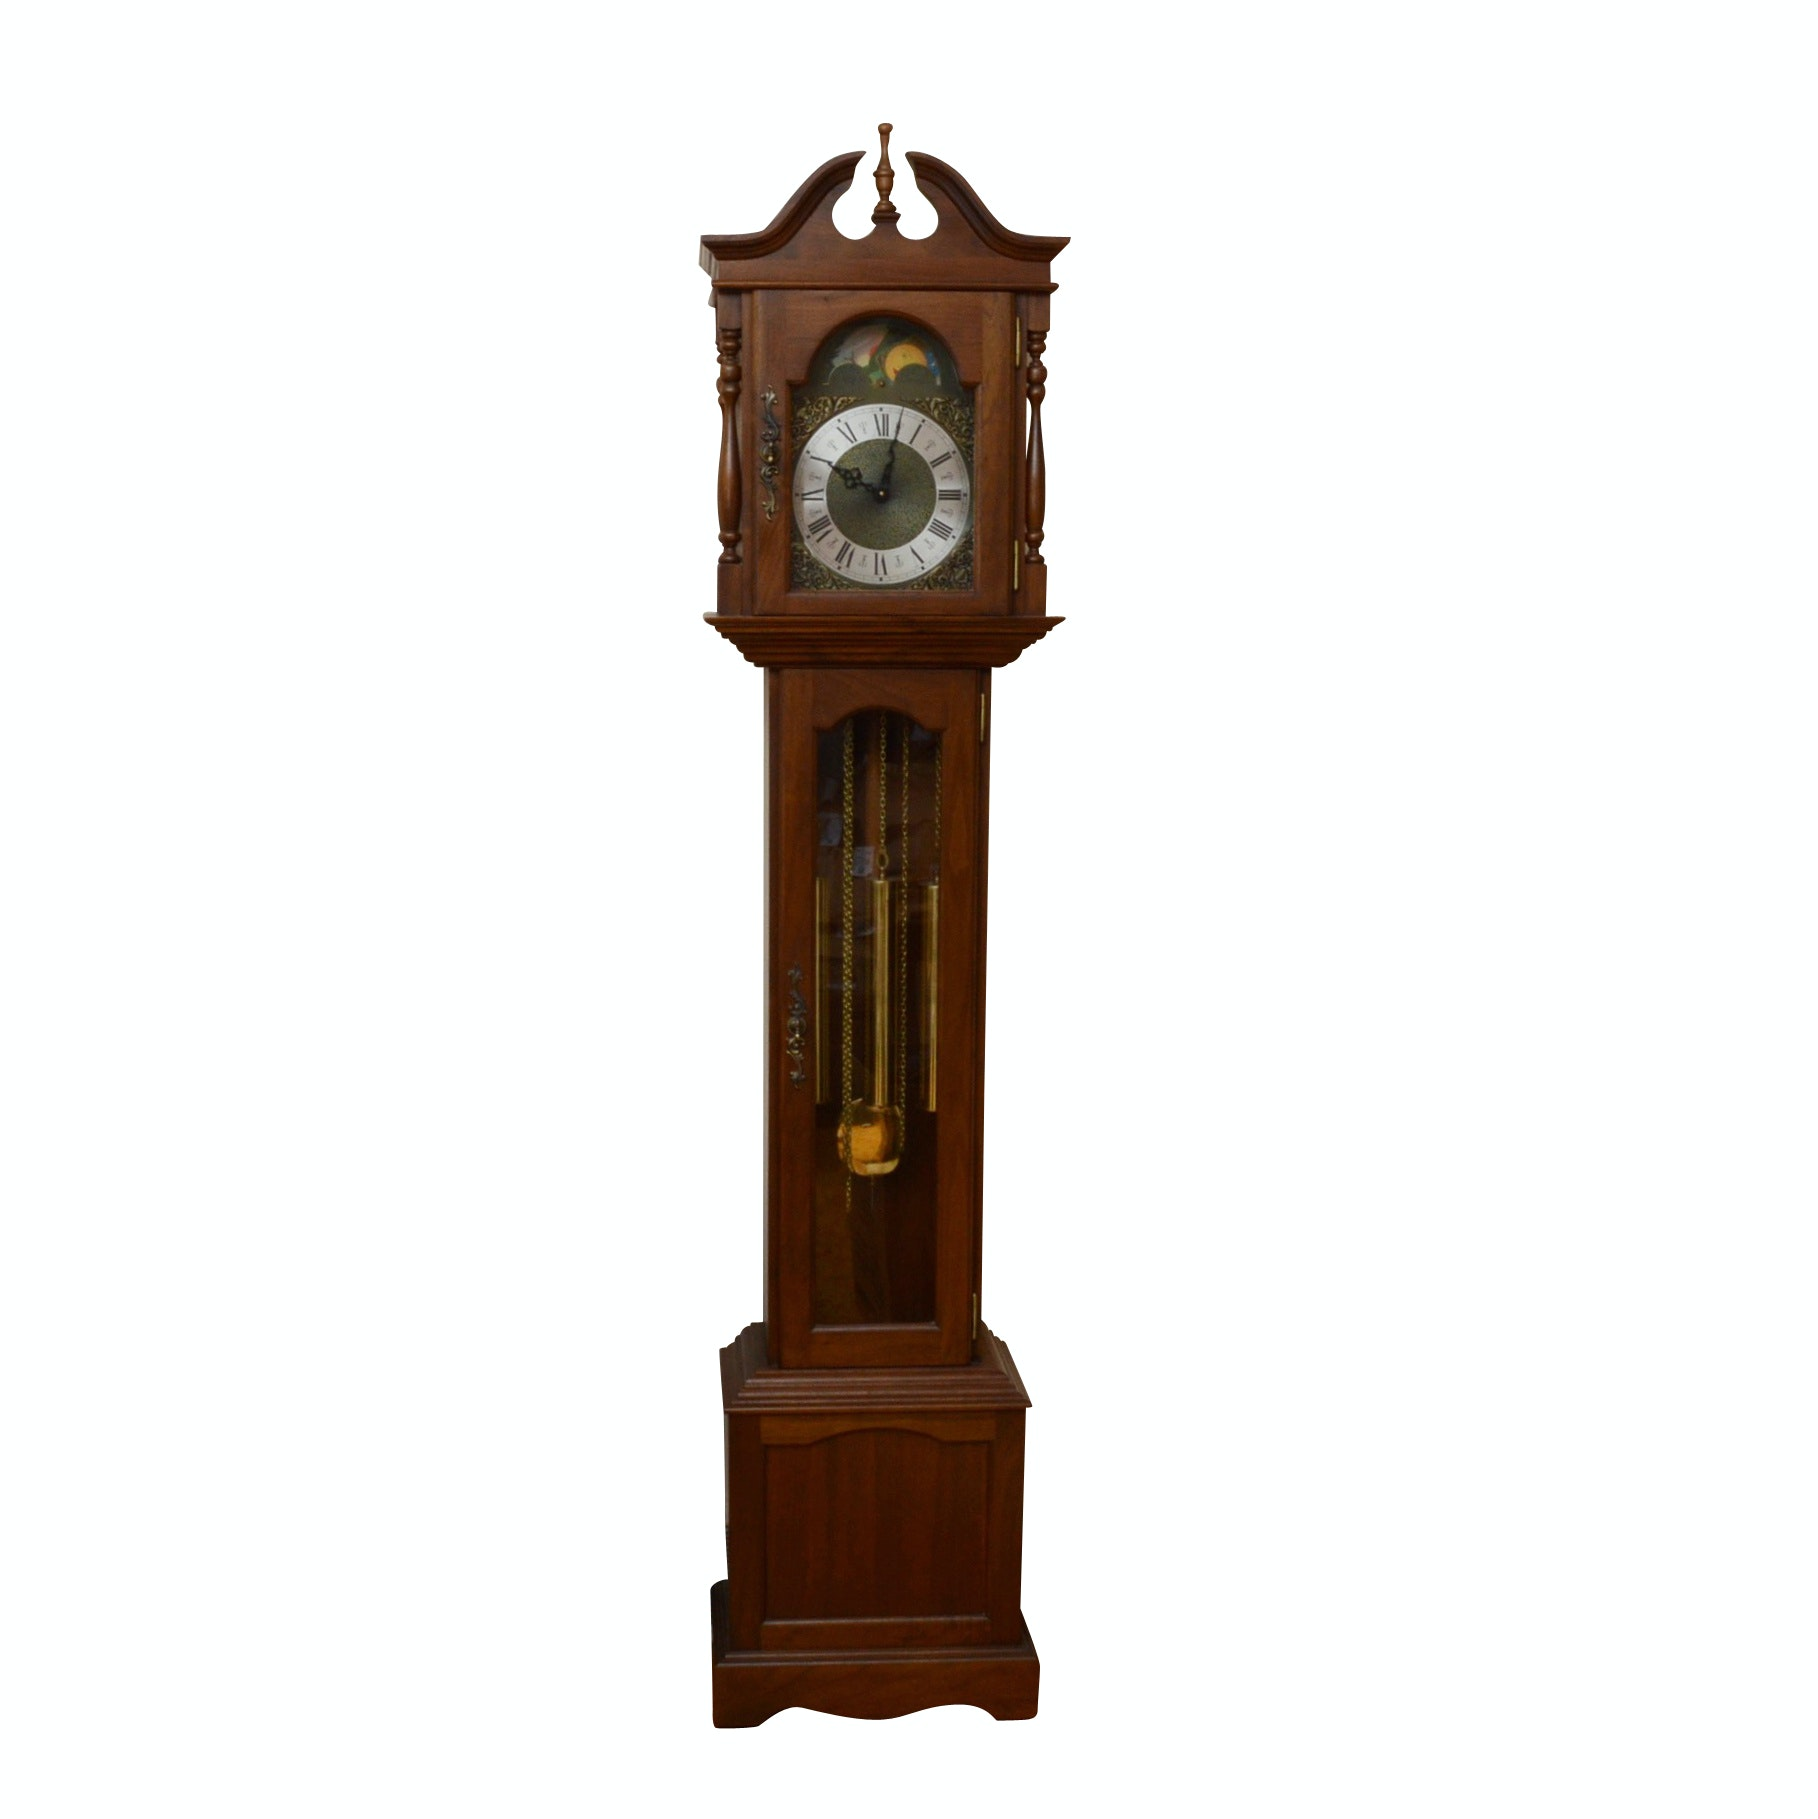 Emperor Clock Co. Grandfather Clock